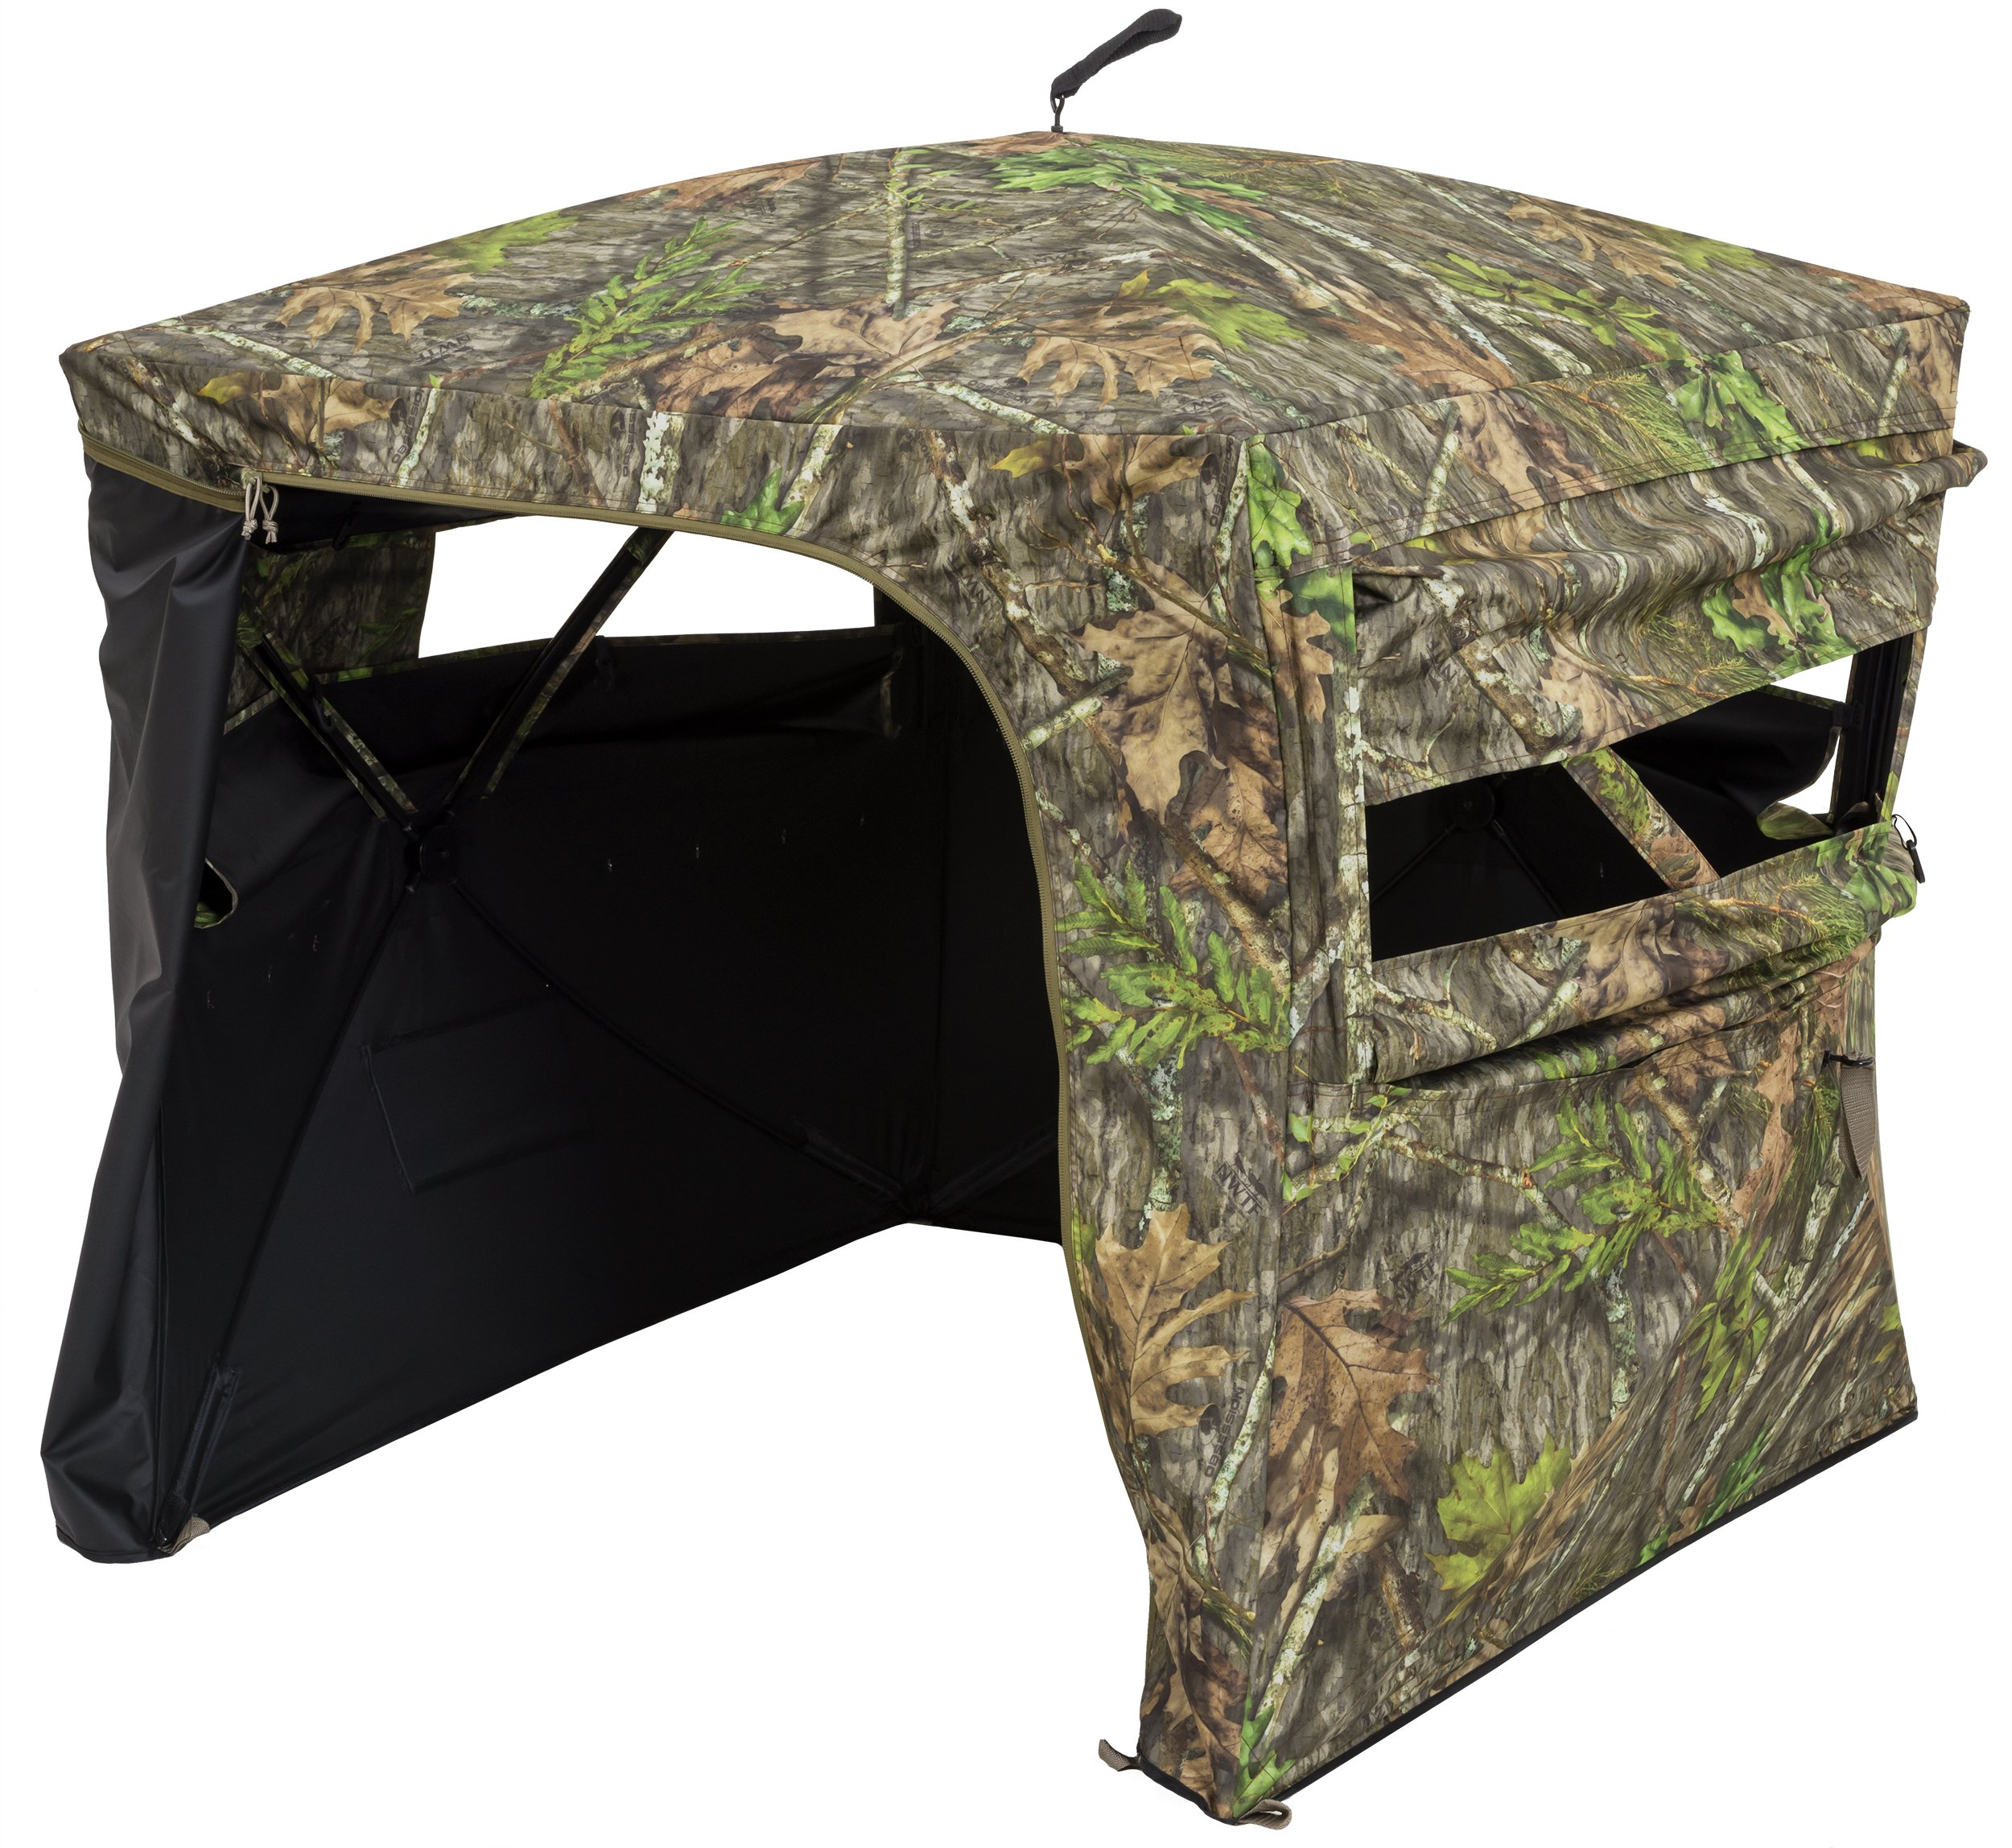 ALPS OutdoorZ NWTF Deception Hunting Blind, Mossy Oak Obsession by ALPS OutdoorZ (Image #4)